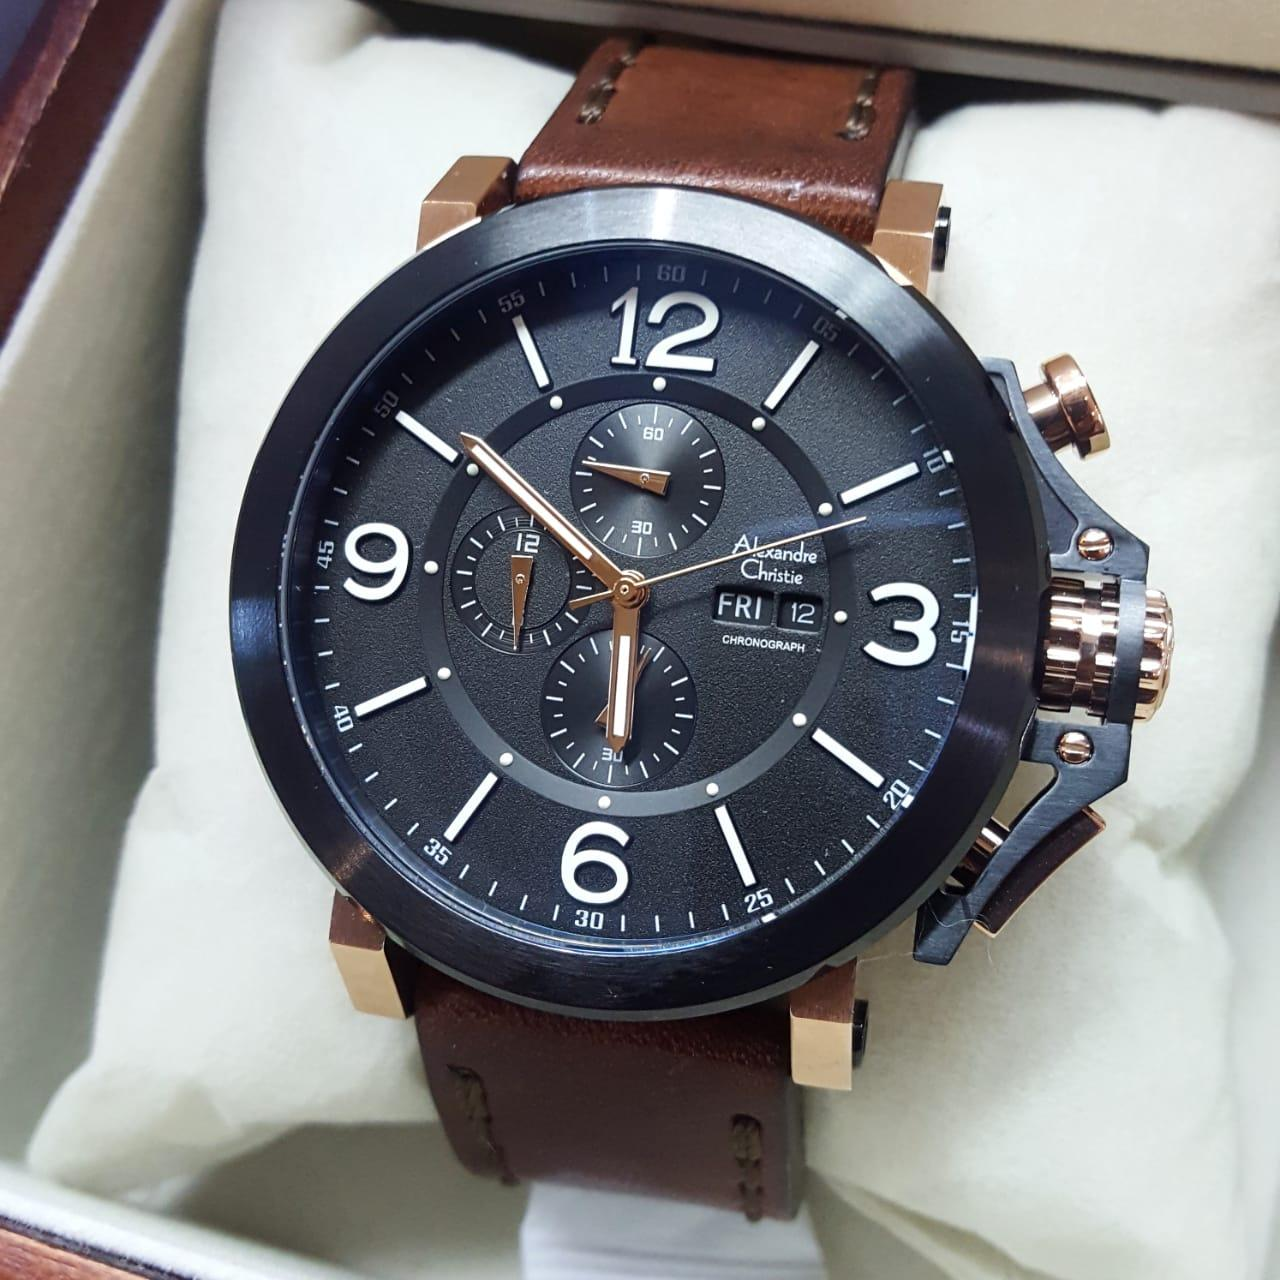 Buy Sell Cheapest Alexandre Christie Ac6281 Best Quality Product Jam Tangan Pria Original Black Stainless Leather Coklat Rosegold